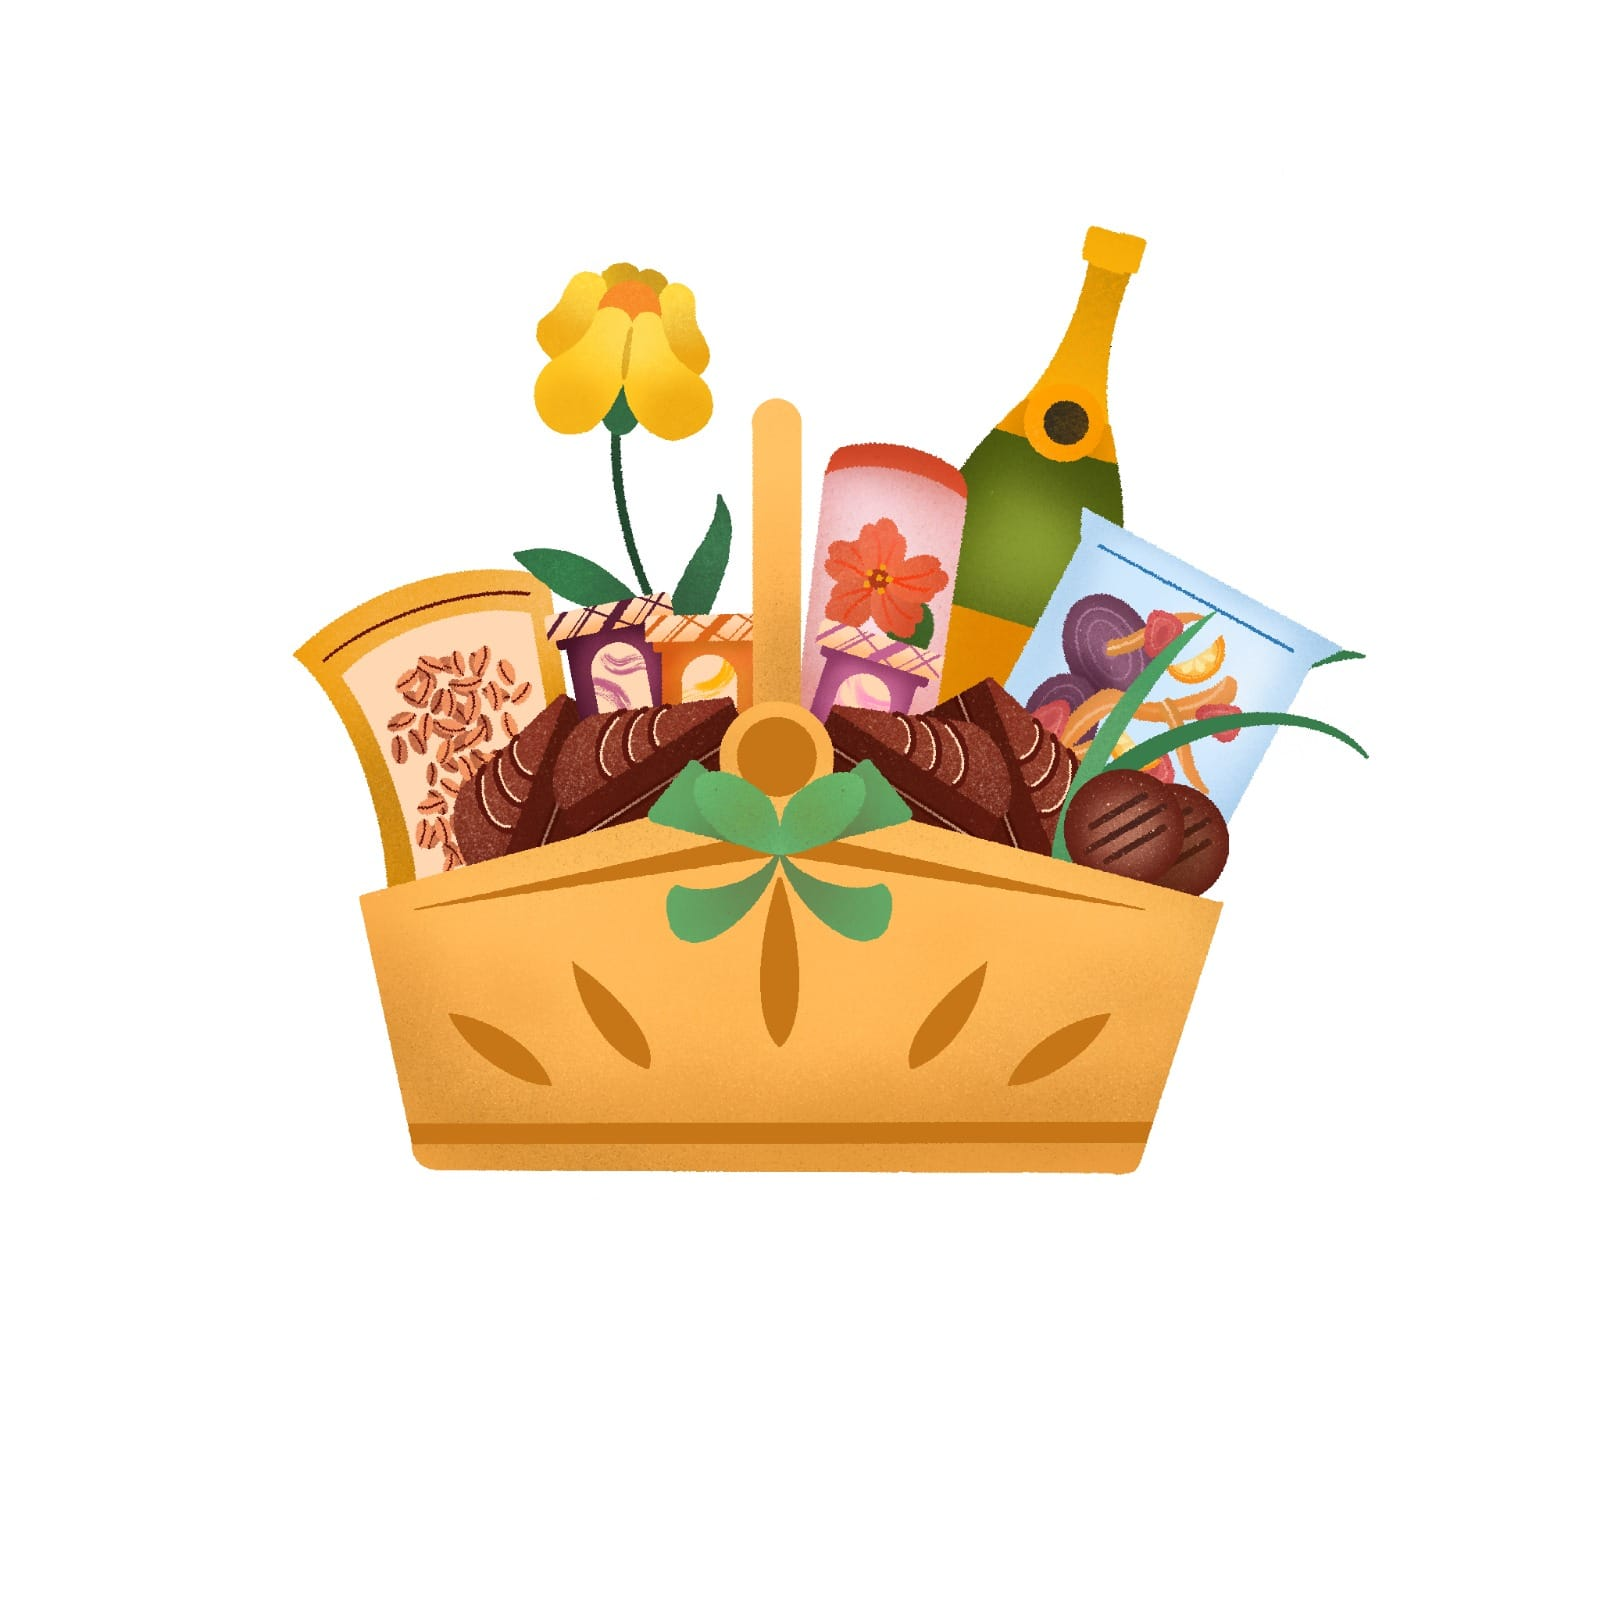 The Celebration Hamper (Out of stock)